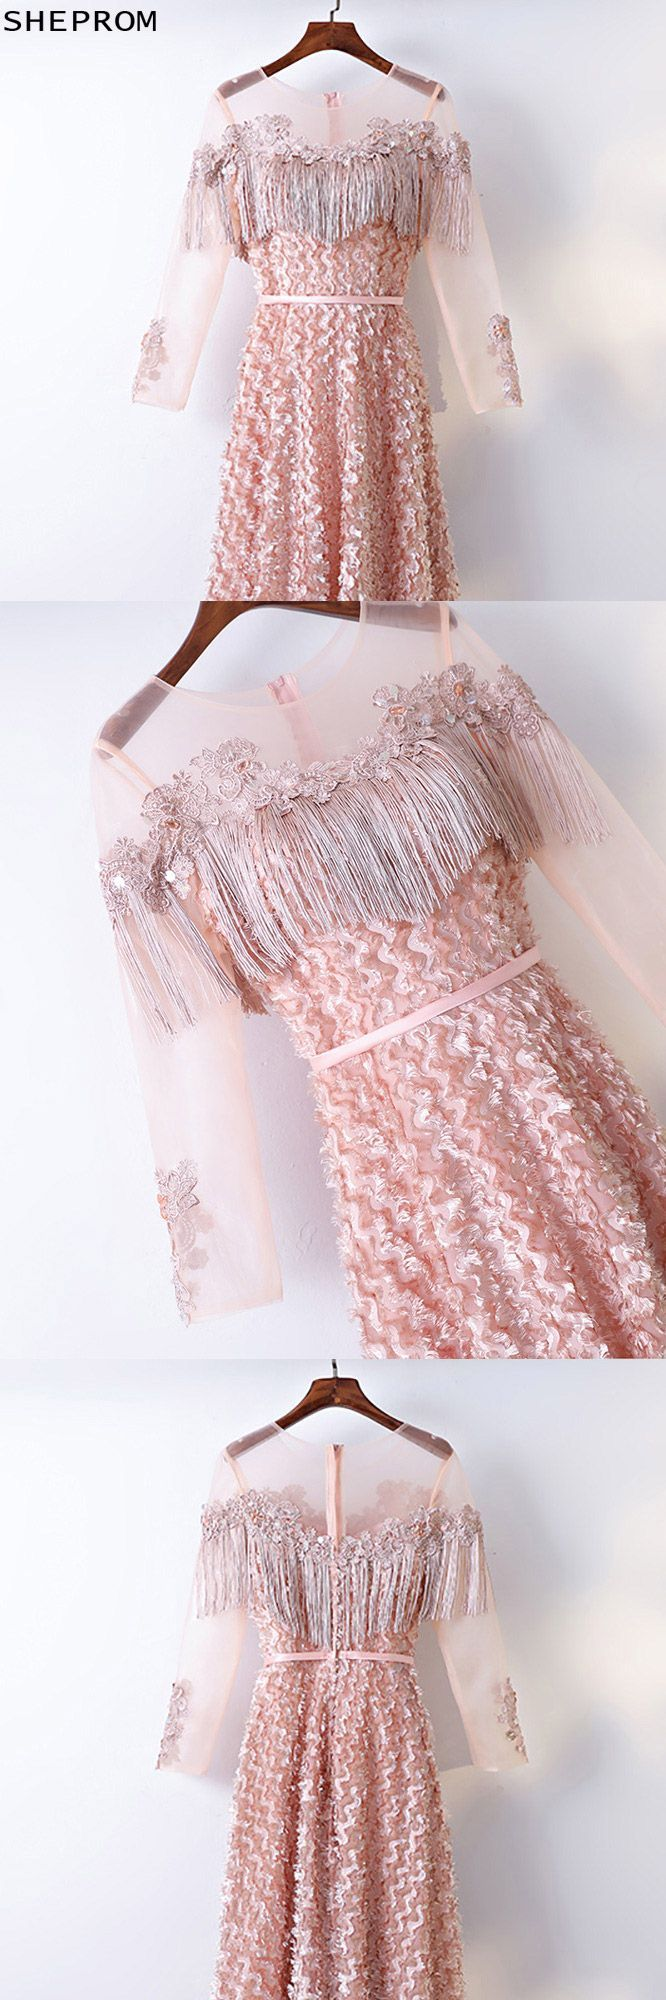 Unique long sleeve prom party dress with illusion neckline